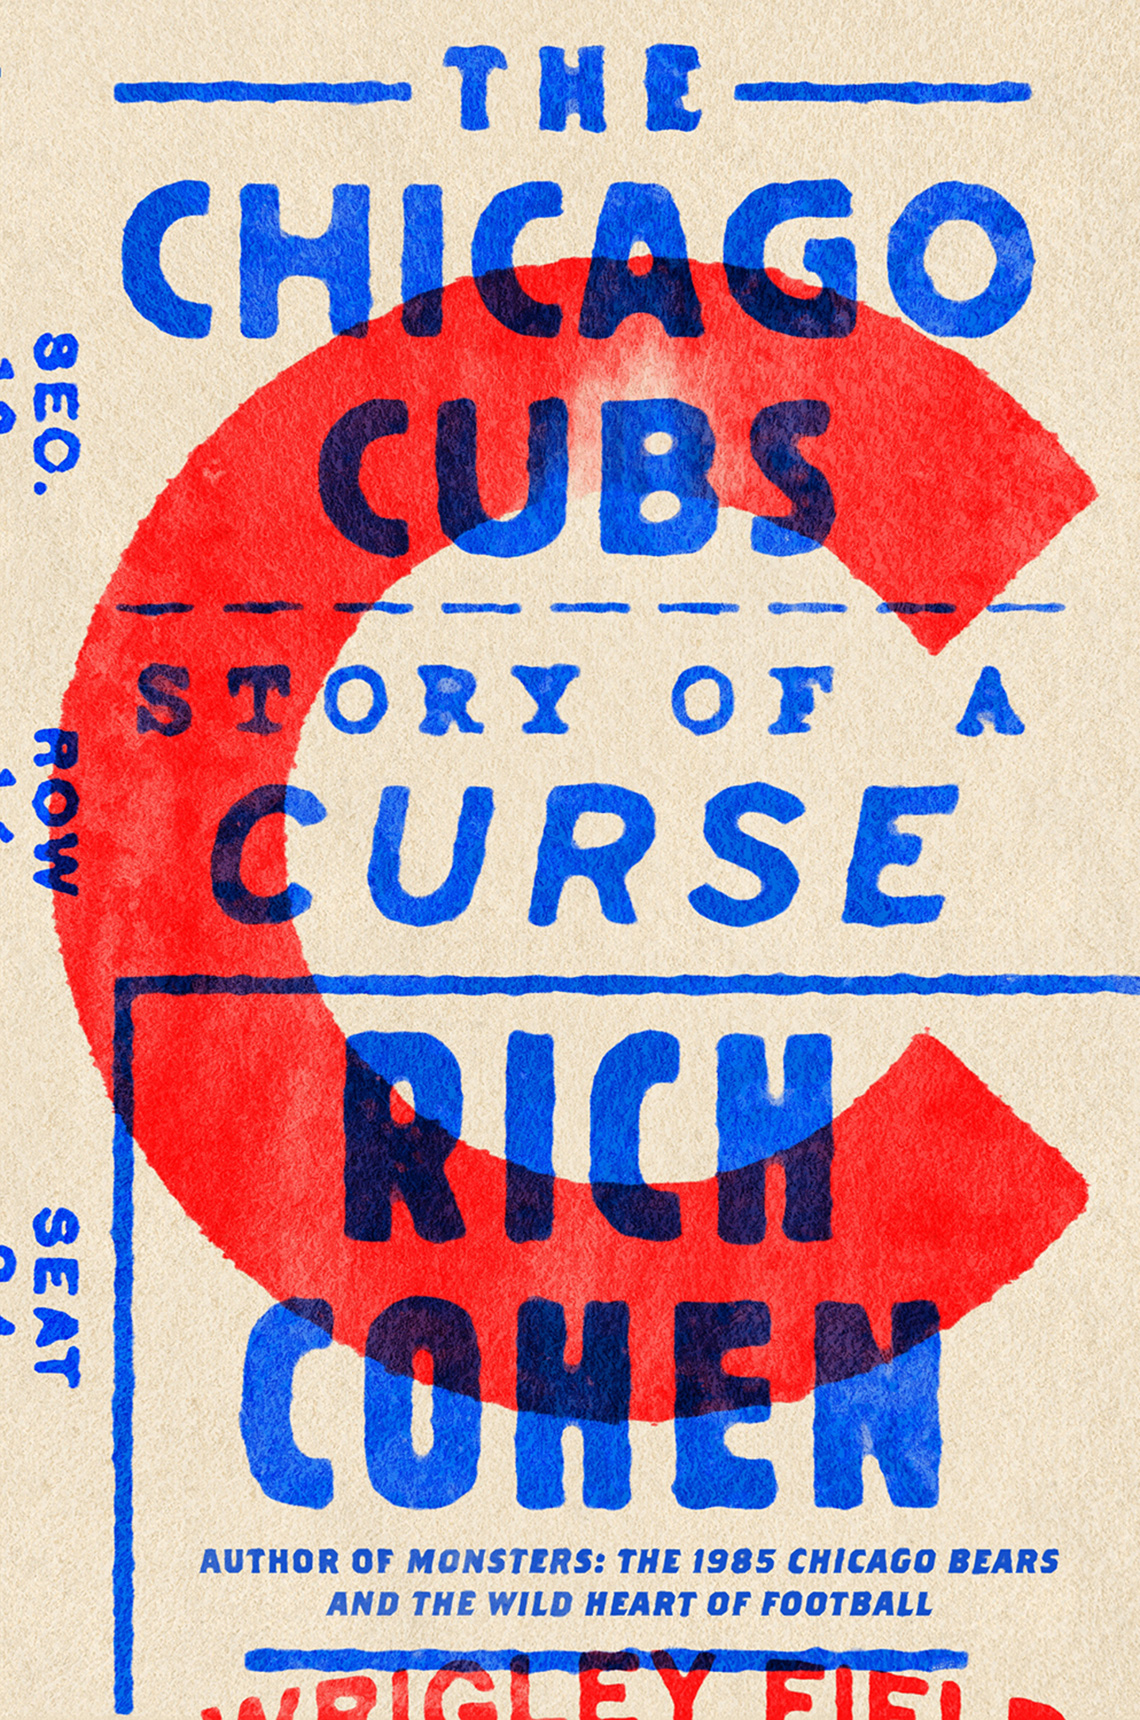 'Chicago Cubs: Story of a Curse' by Rich Cohen